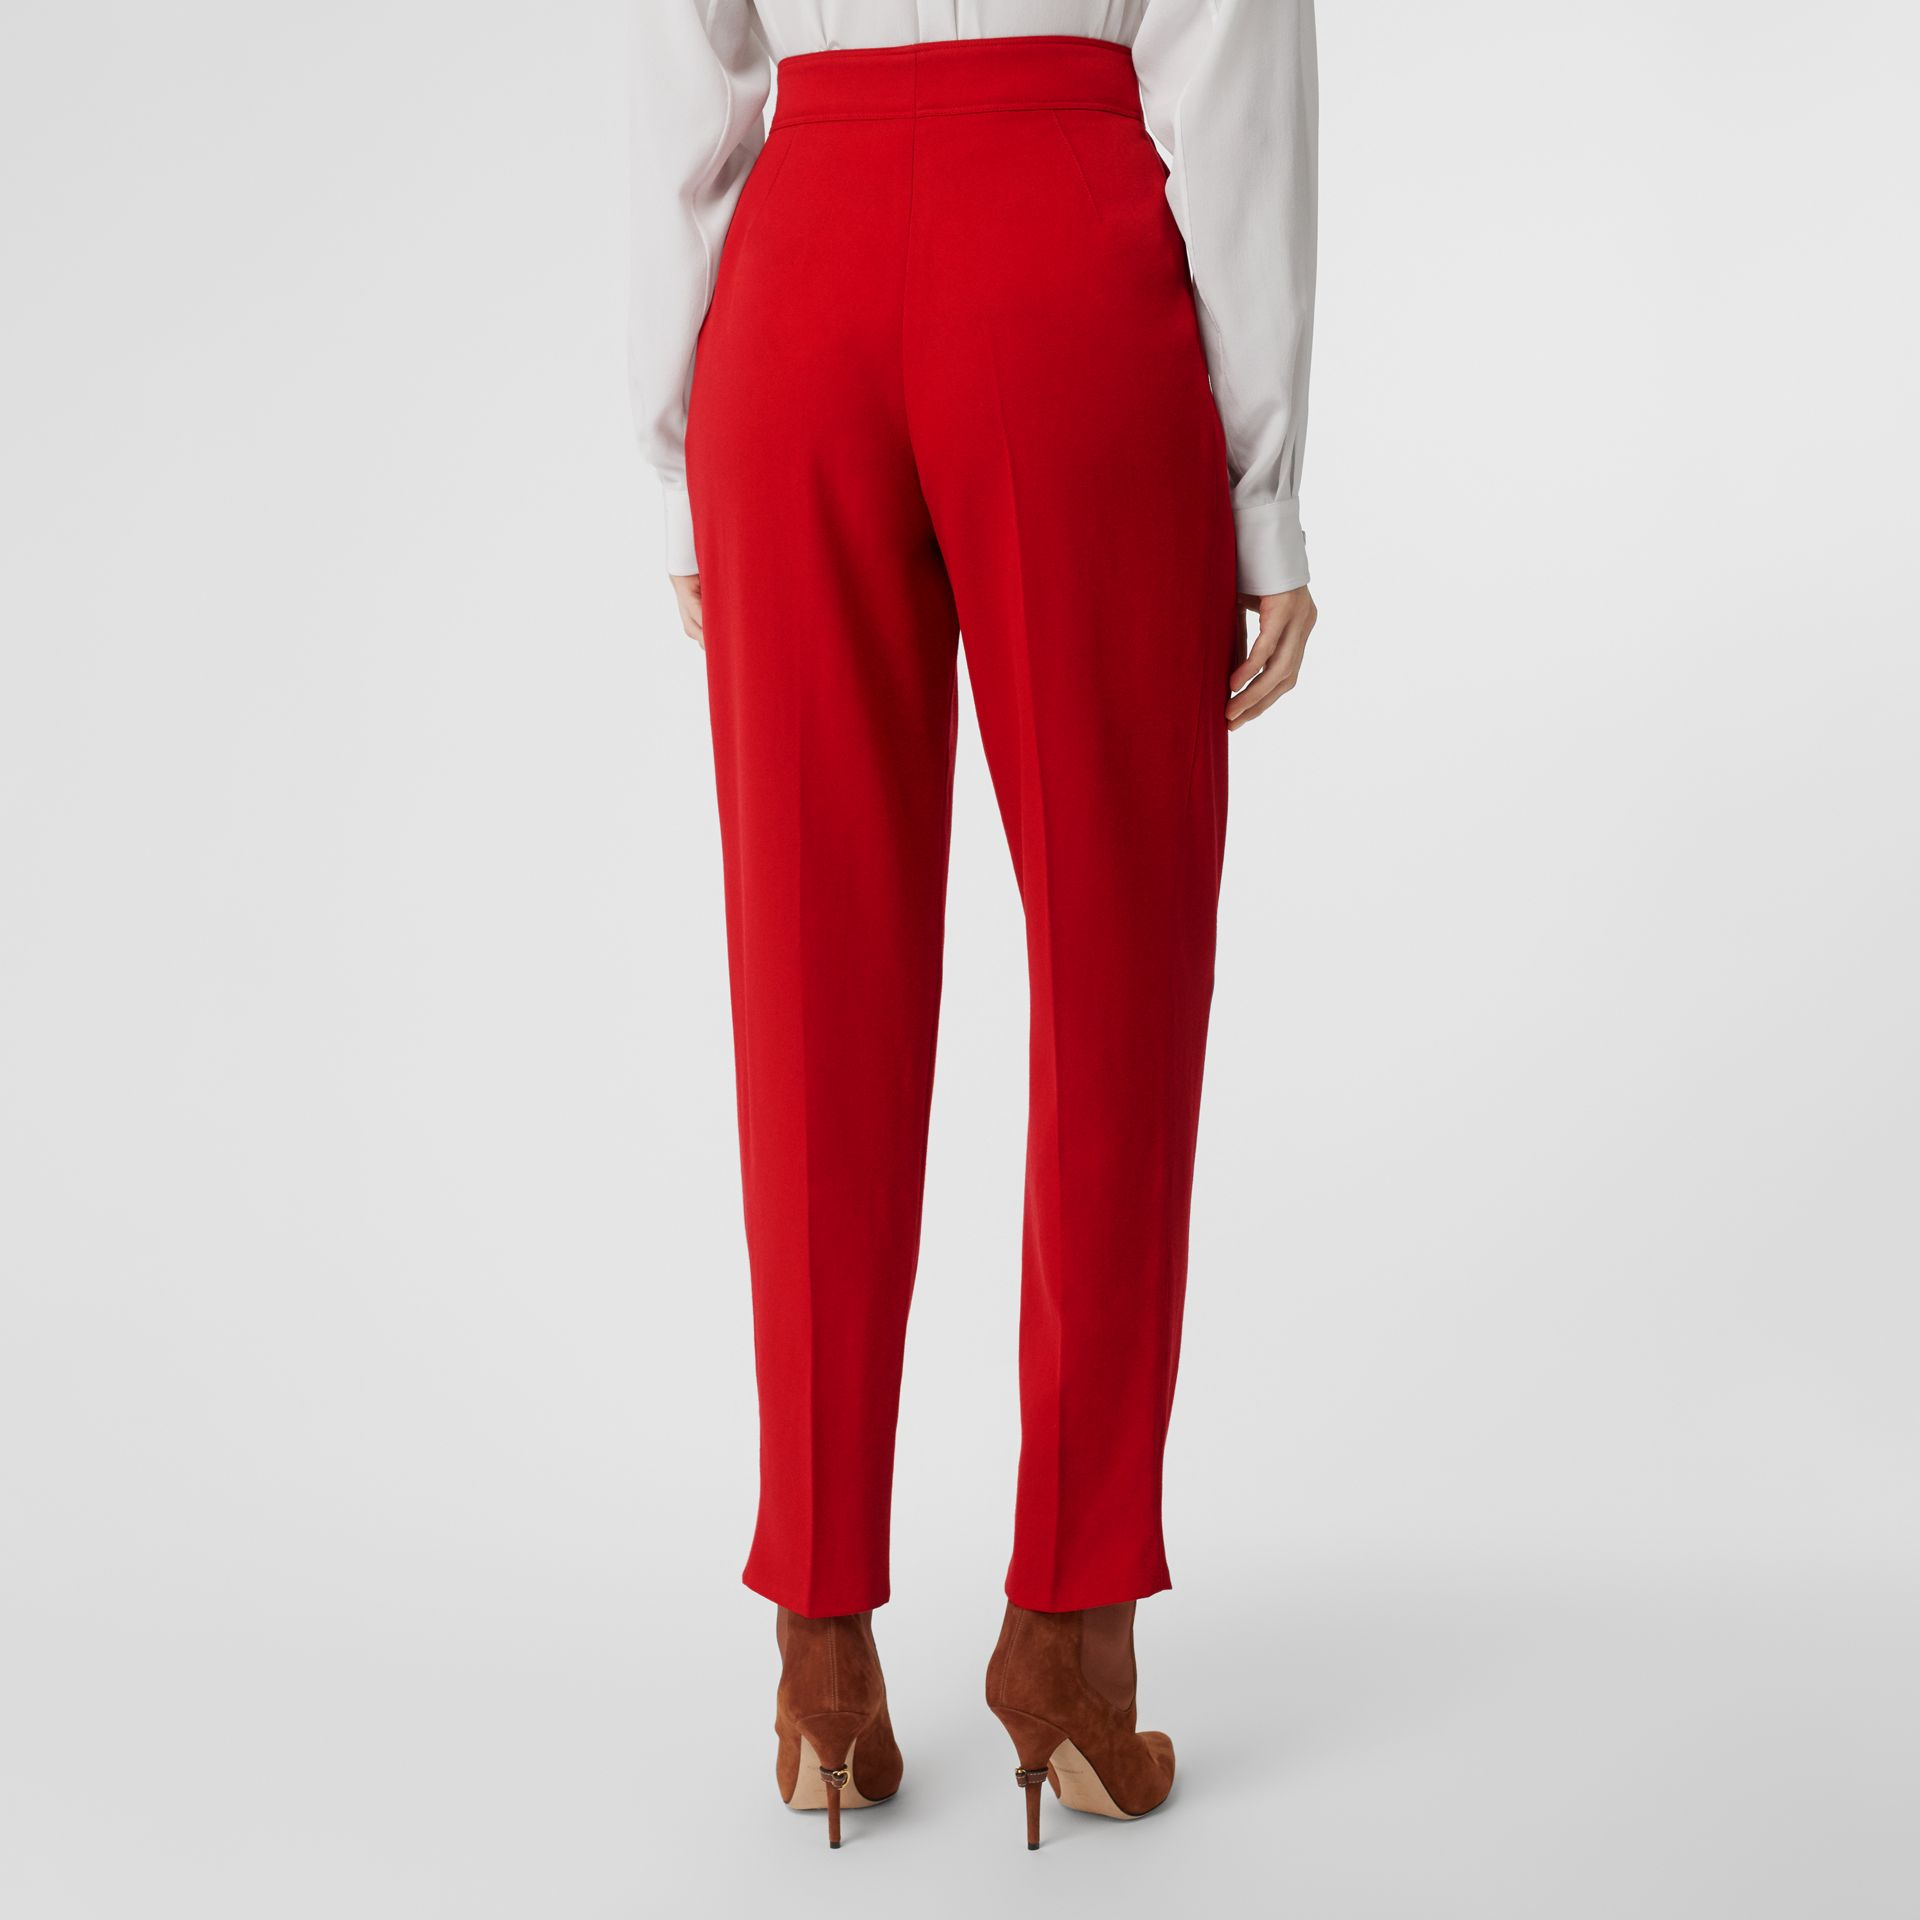 Pleat Detail Wool Tailored Trousers in Bright Red - Women | Burberry - gallery image 1